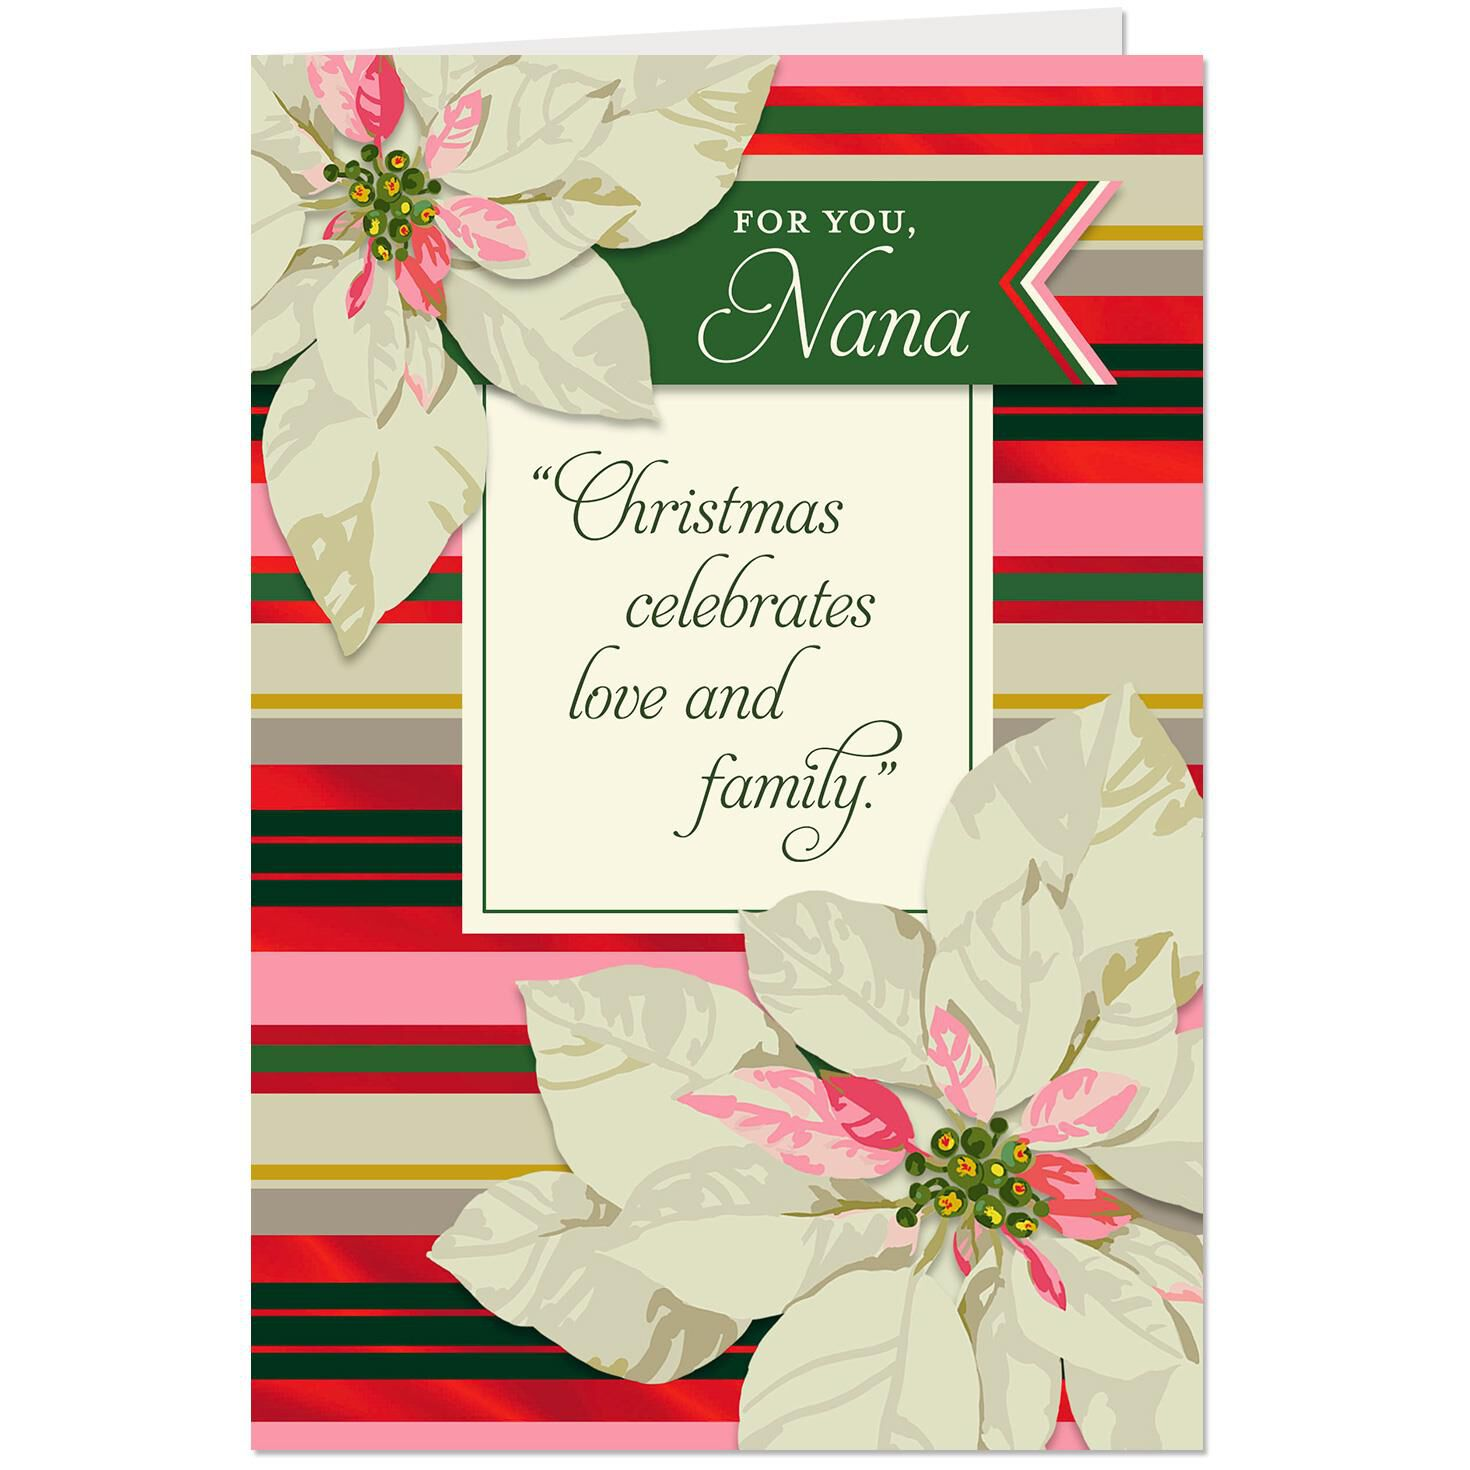 Blessed to have you christmas card for nana greeting cards hallmark m4hsunfo